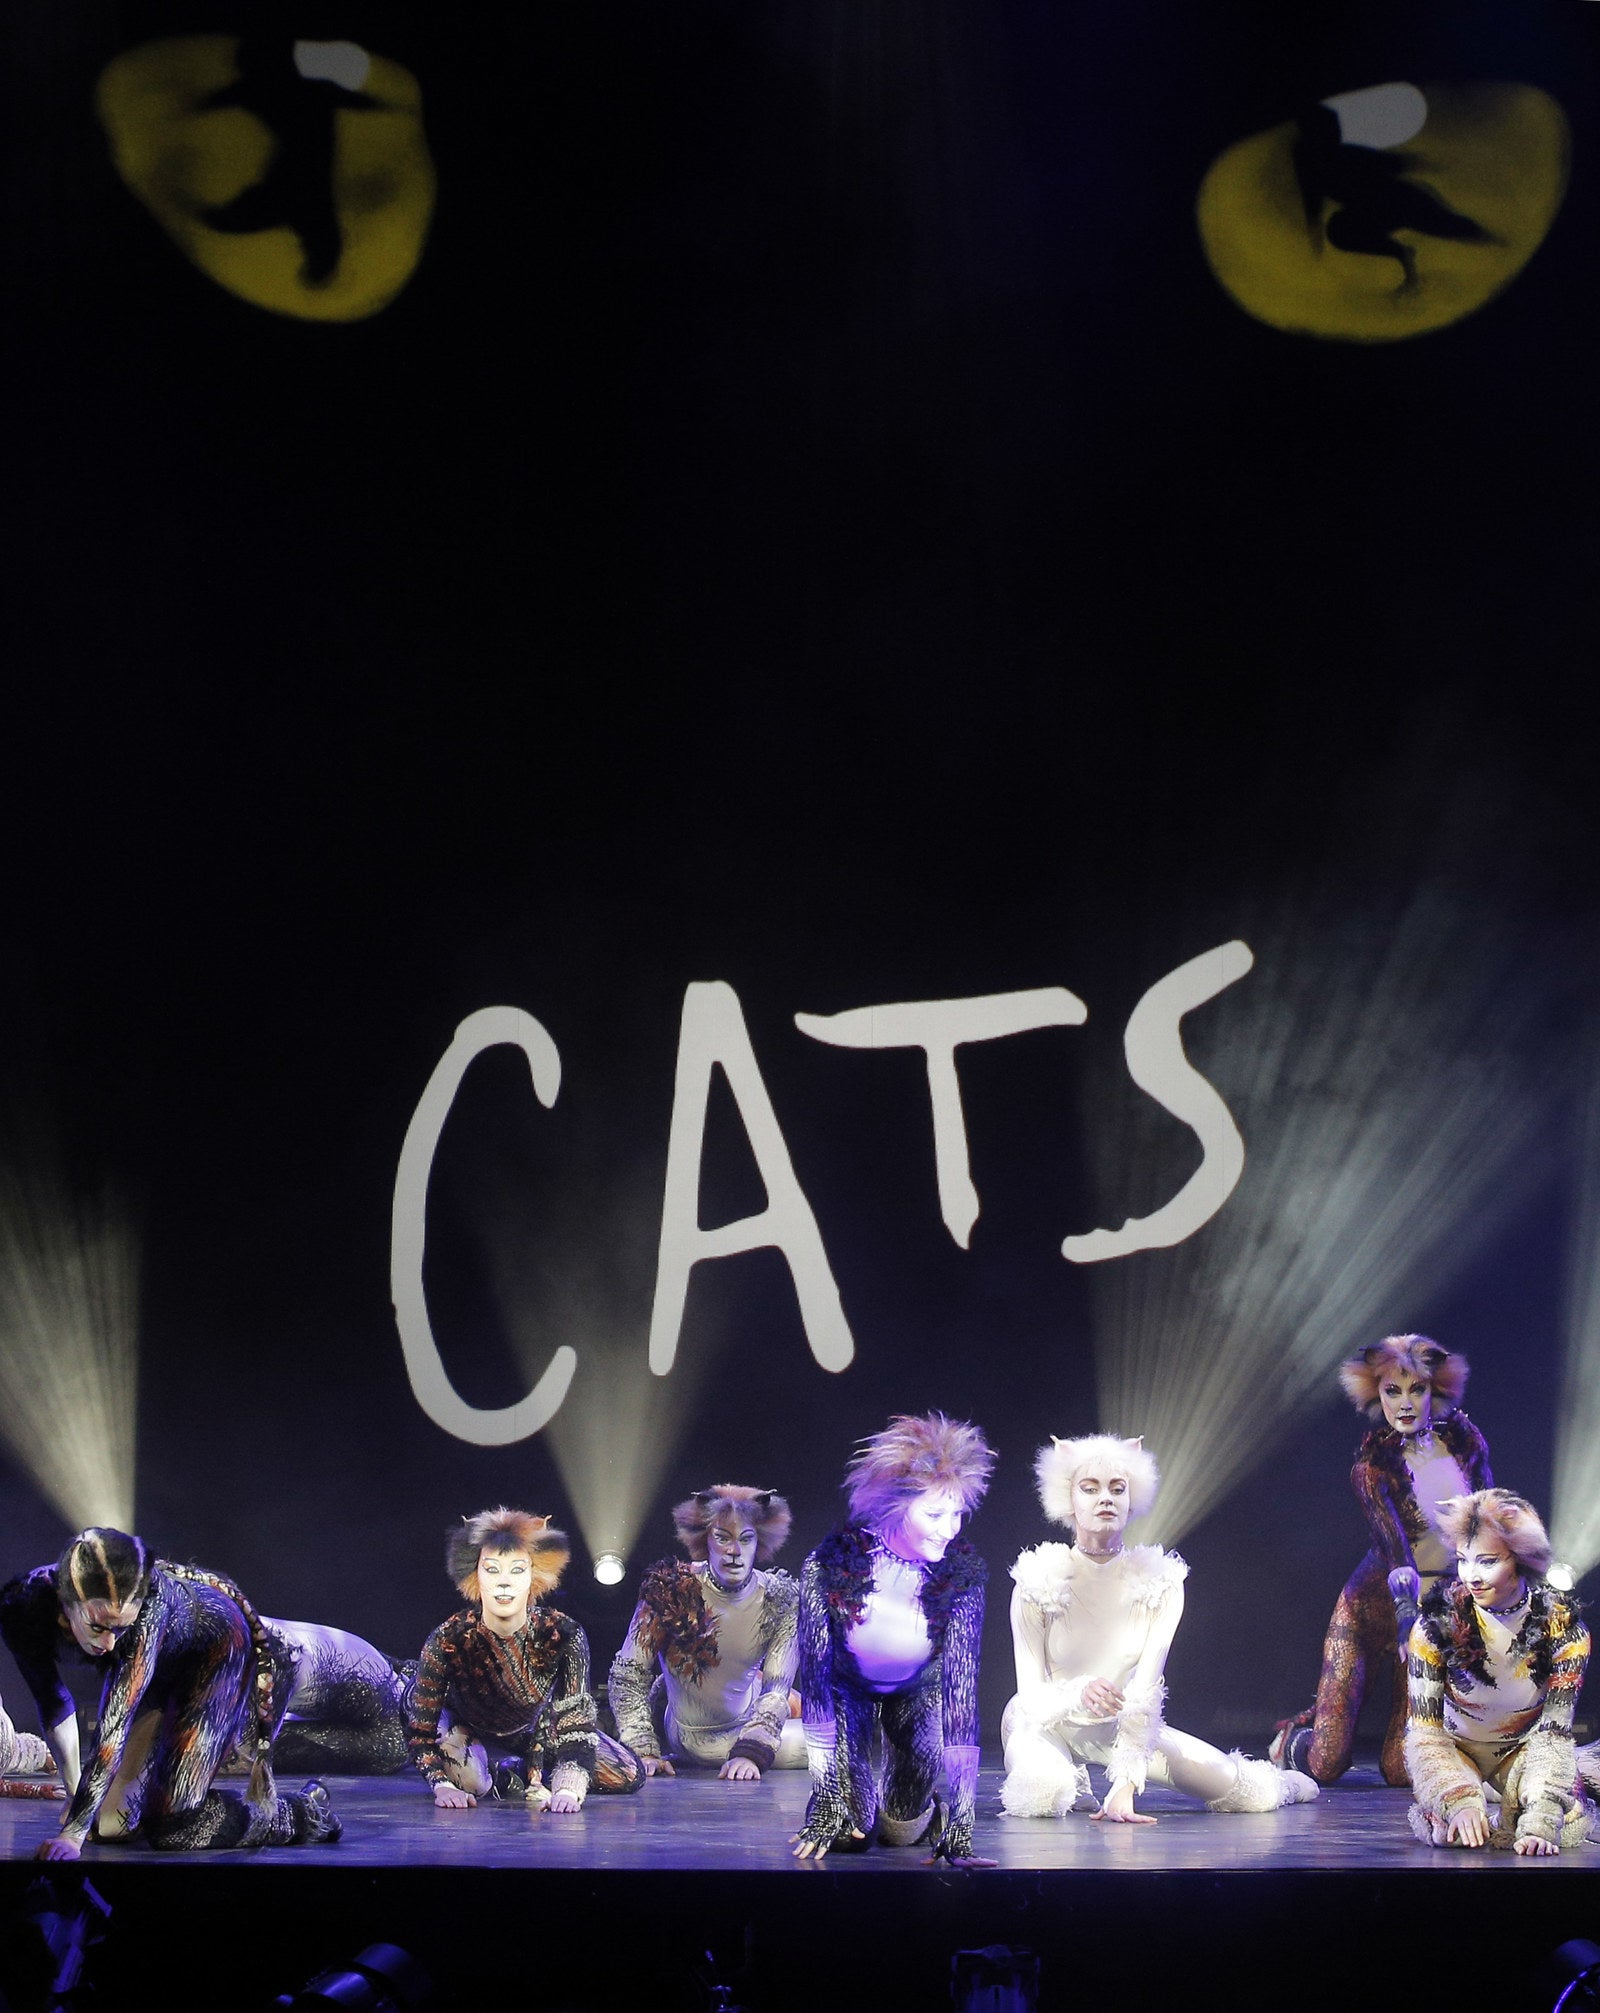 The fourth-longest running show on Broadway, Cats also ran for a staggering 21 years in London.